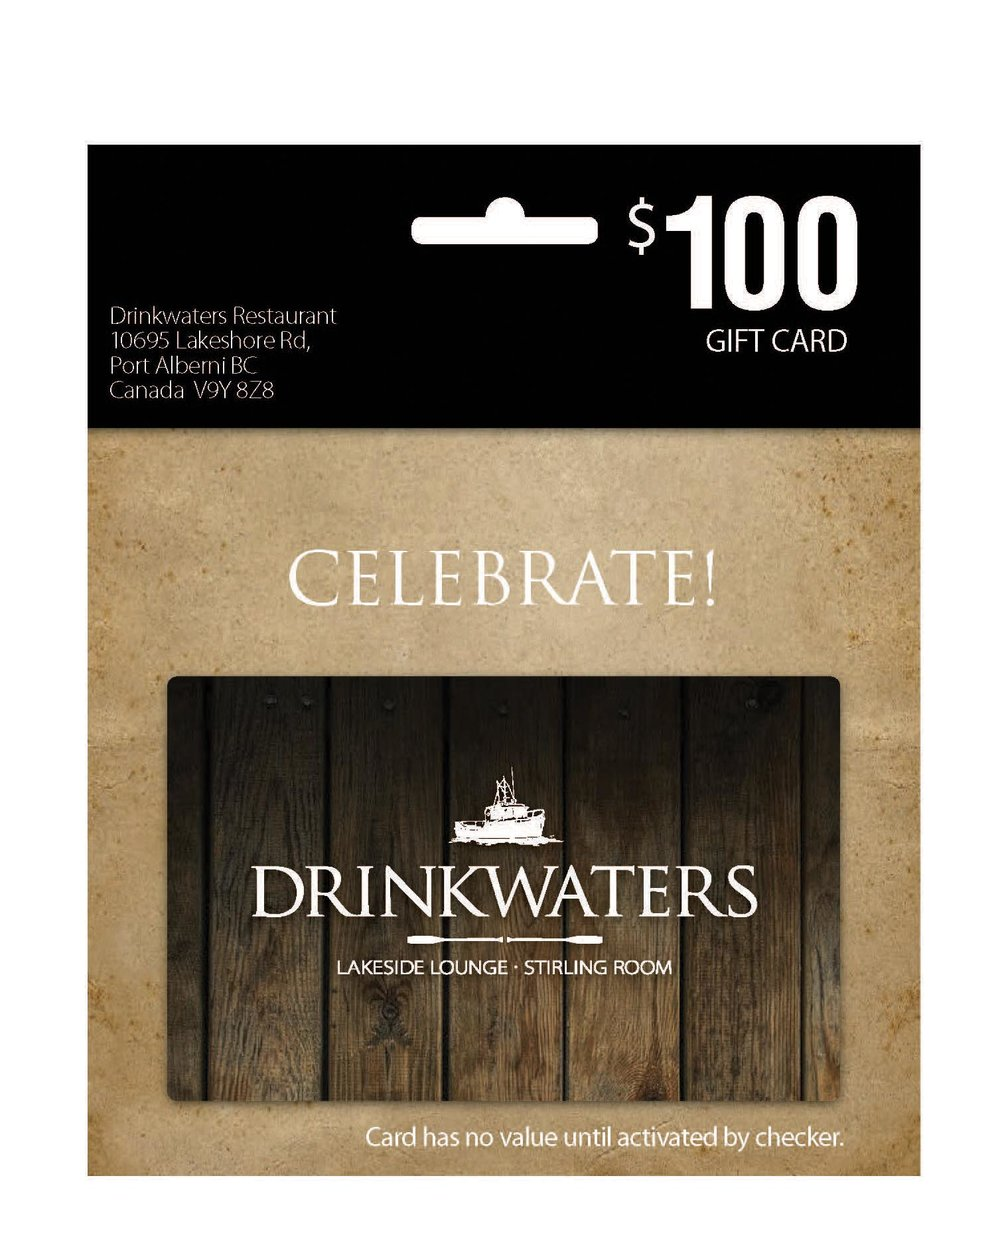 DRINKWATERS GIFT CARD - $100